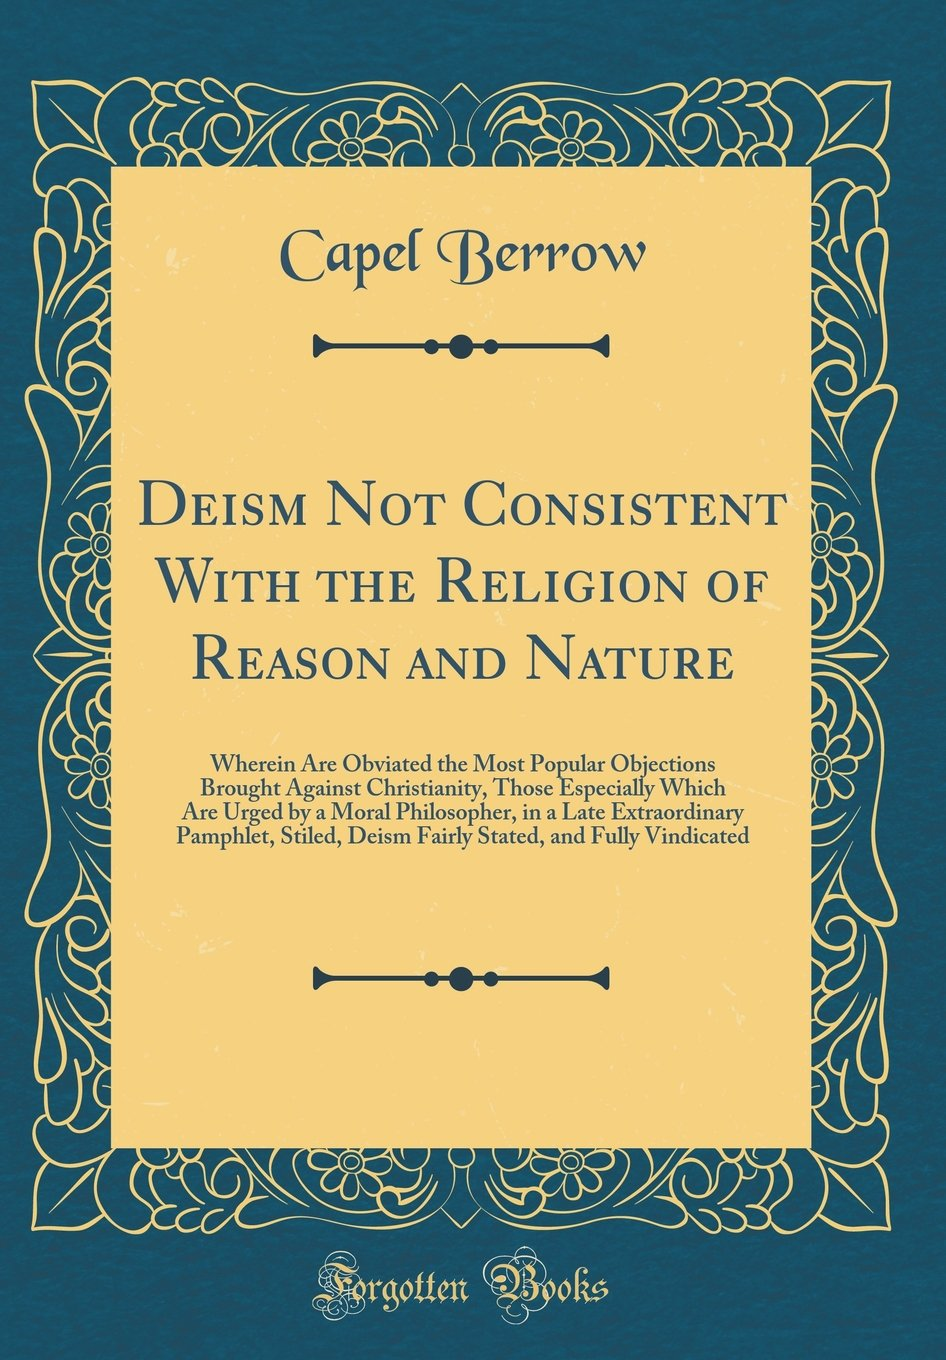 Read Online Deism Not Consistent With the Religion of Reason and Nature: Wherein Are Obviated the Most Popular Objections Brought Against Christianity, Those ... Pamphlet, Stiled, Deism Fairly Sta pdf epub